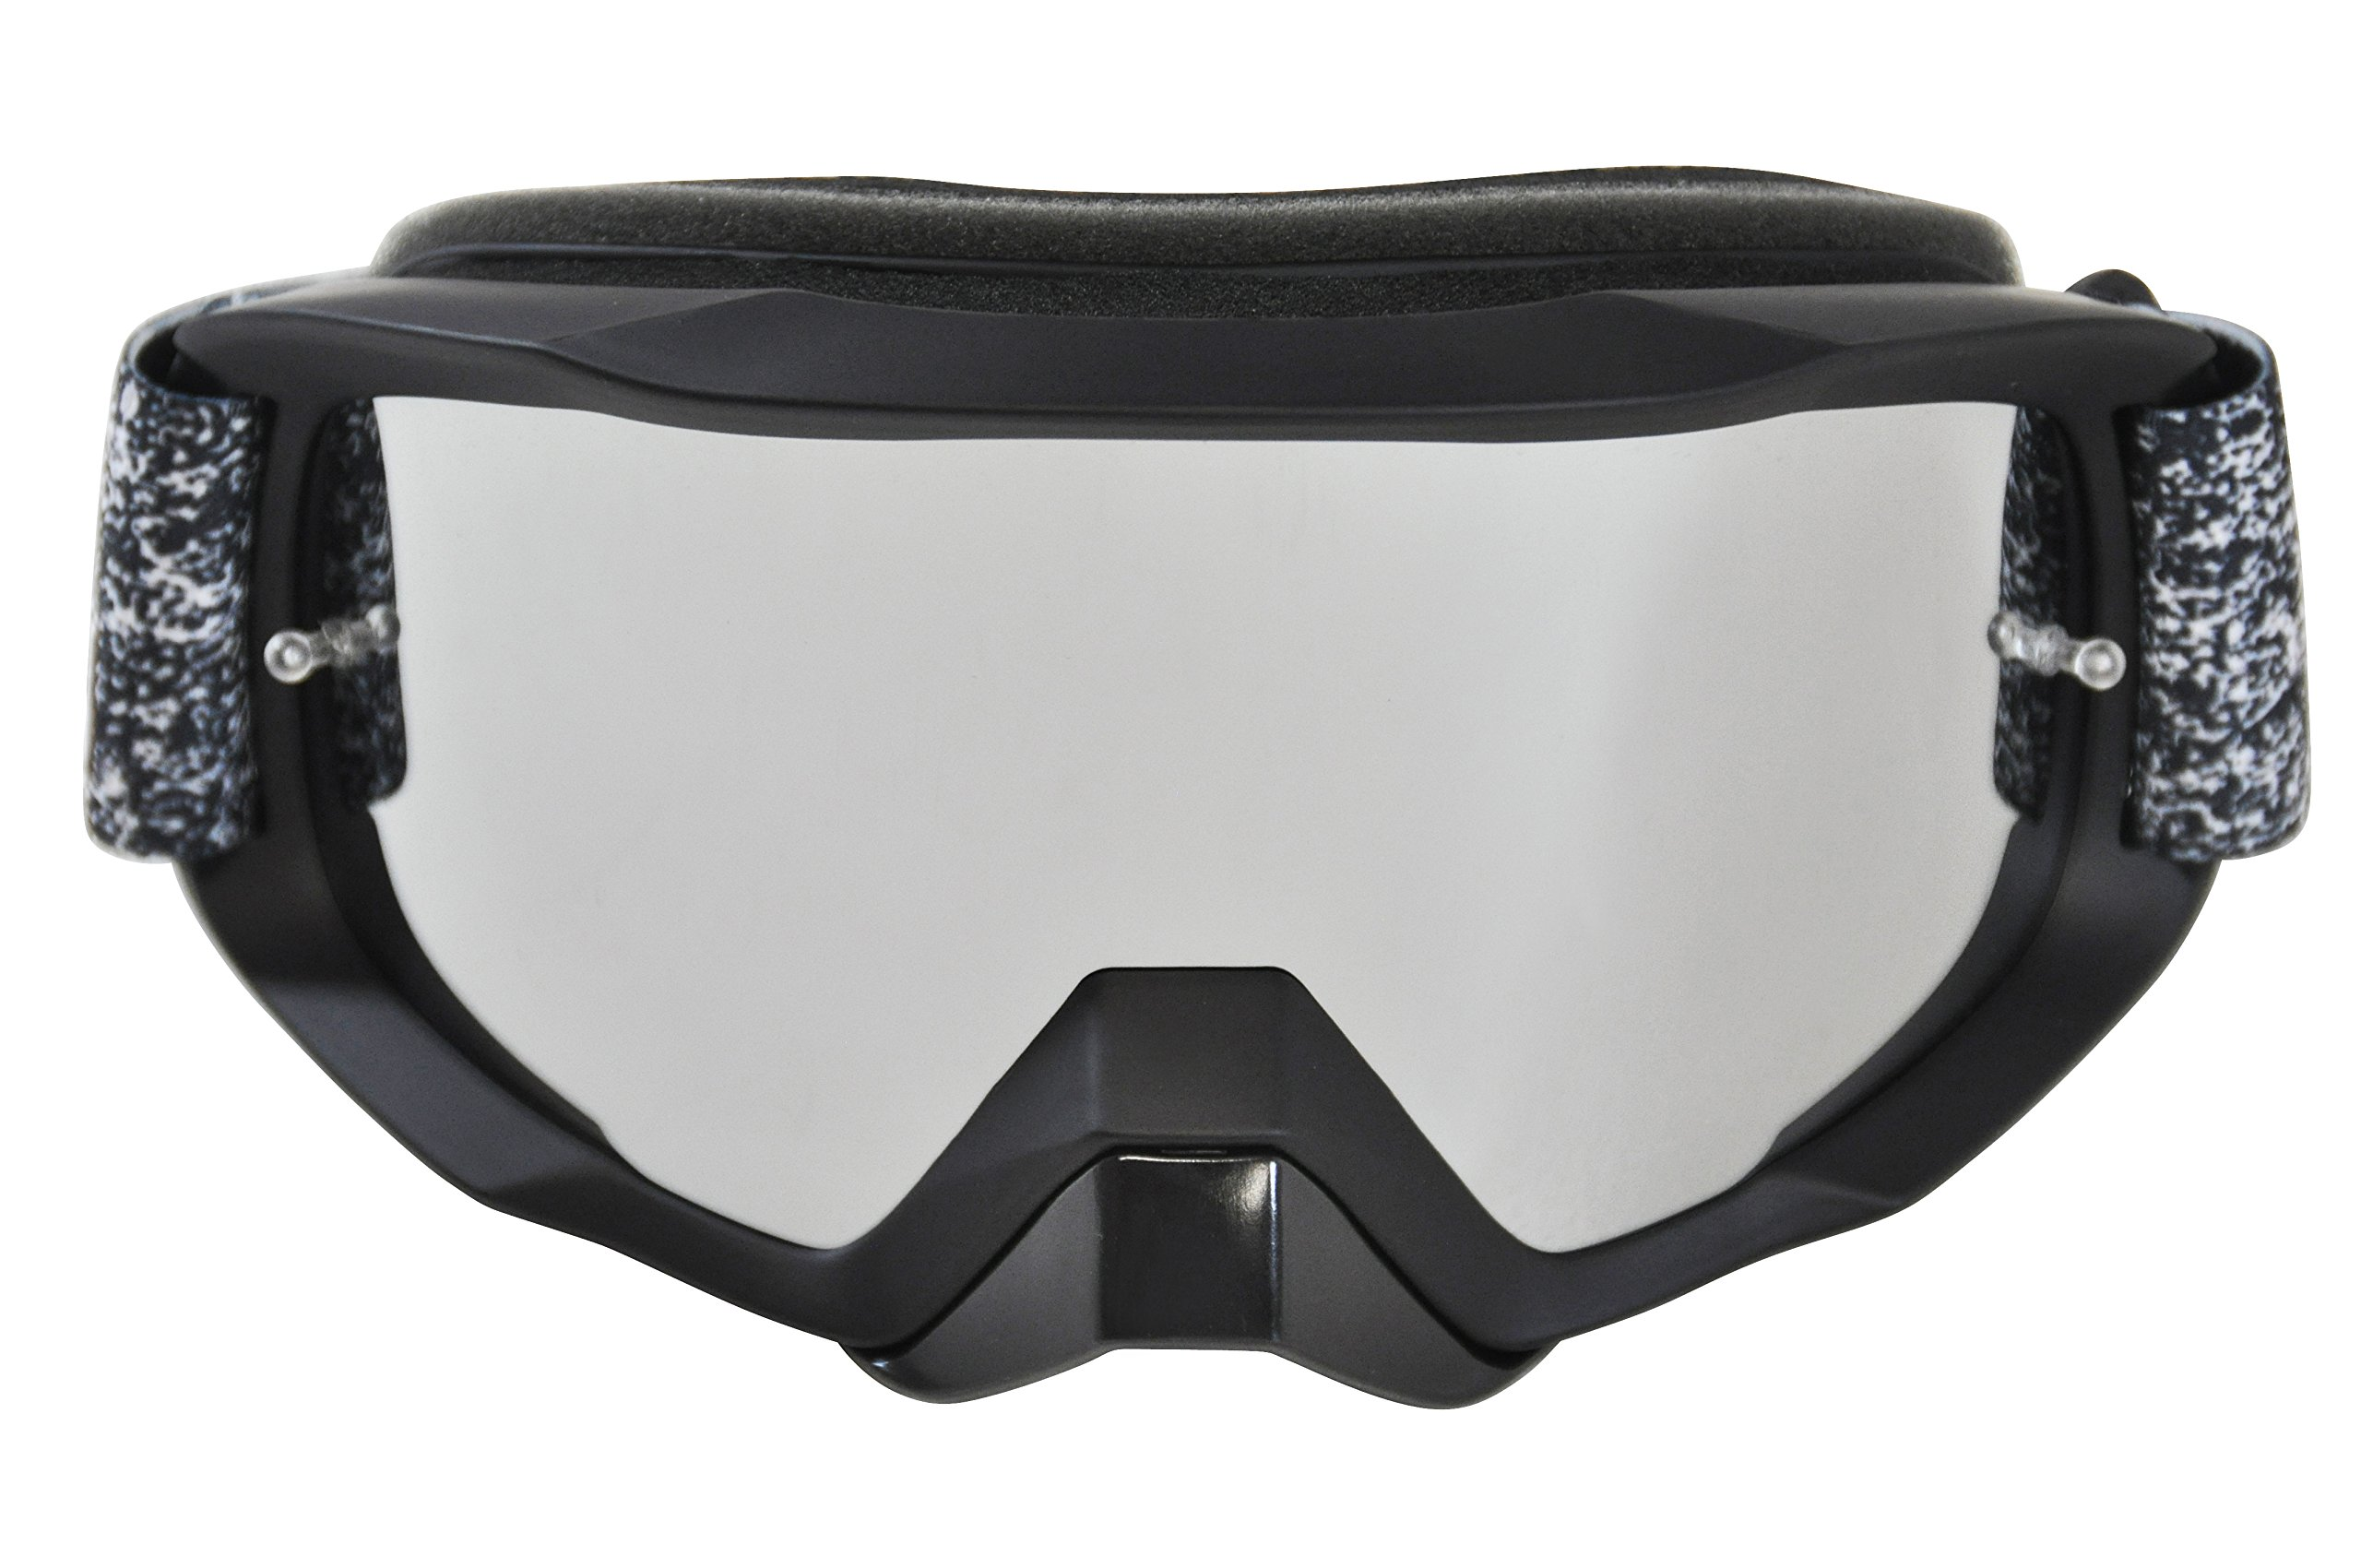 MotoFixation Motocross Mx Dirt Bike Moto ATV Motorcycle - Racing Goggles - With Tear Off Pins and Removable Nose Guard(Black)